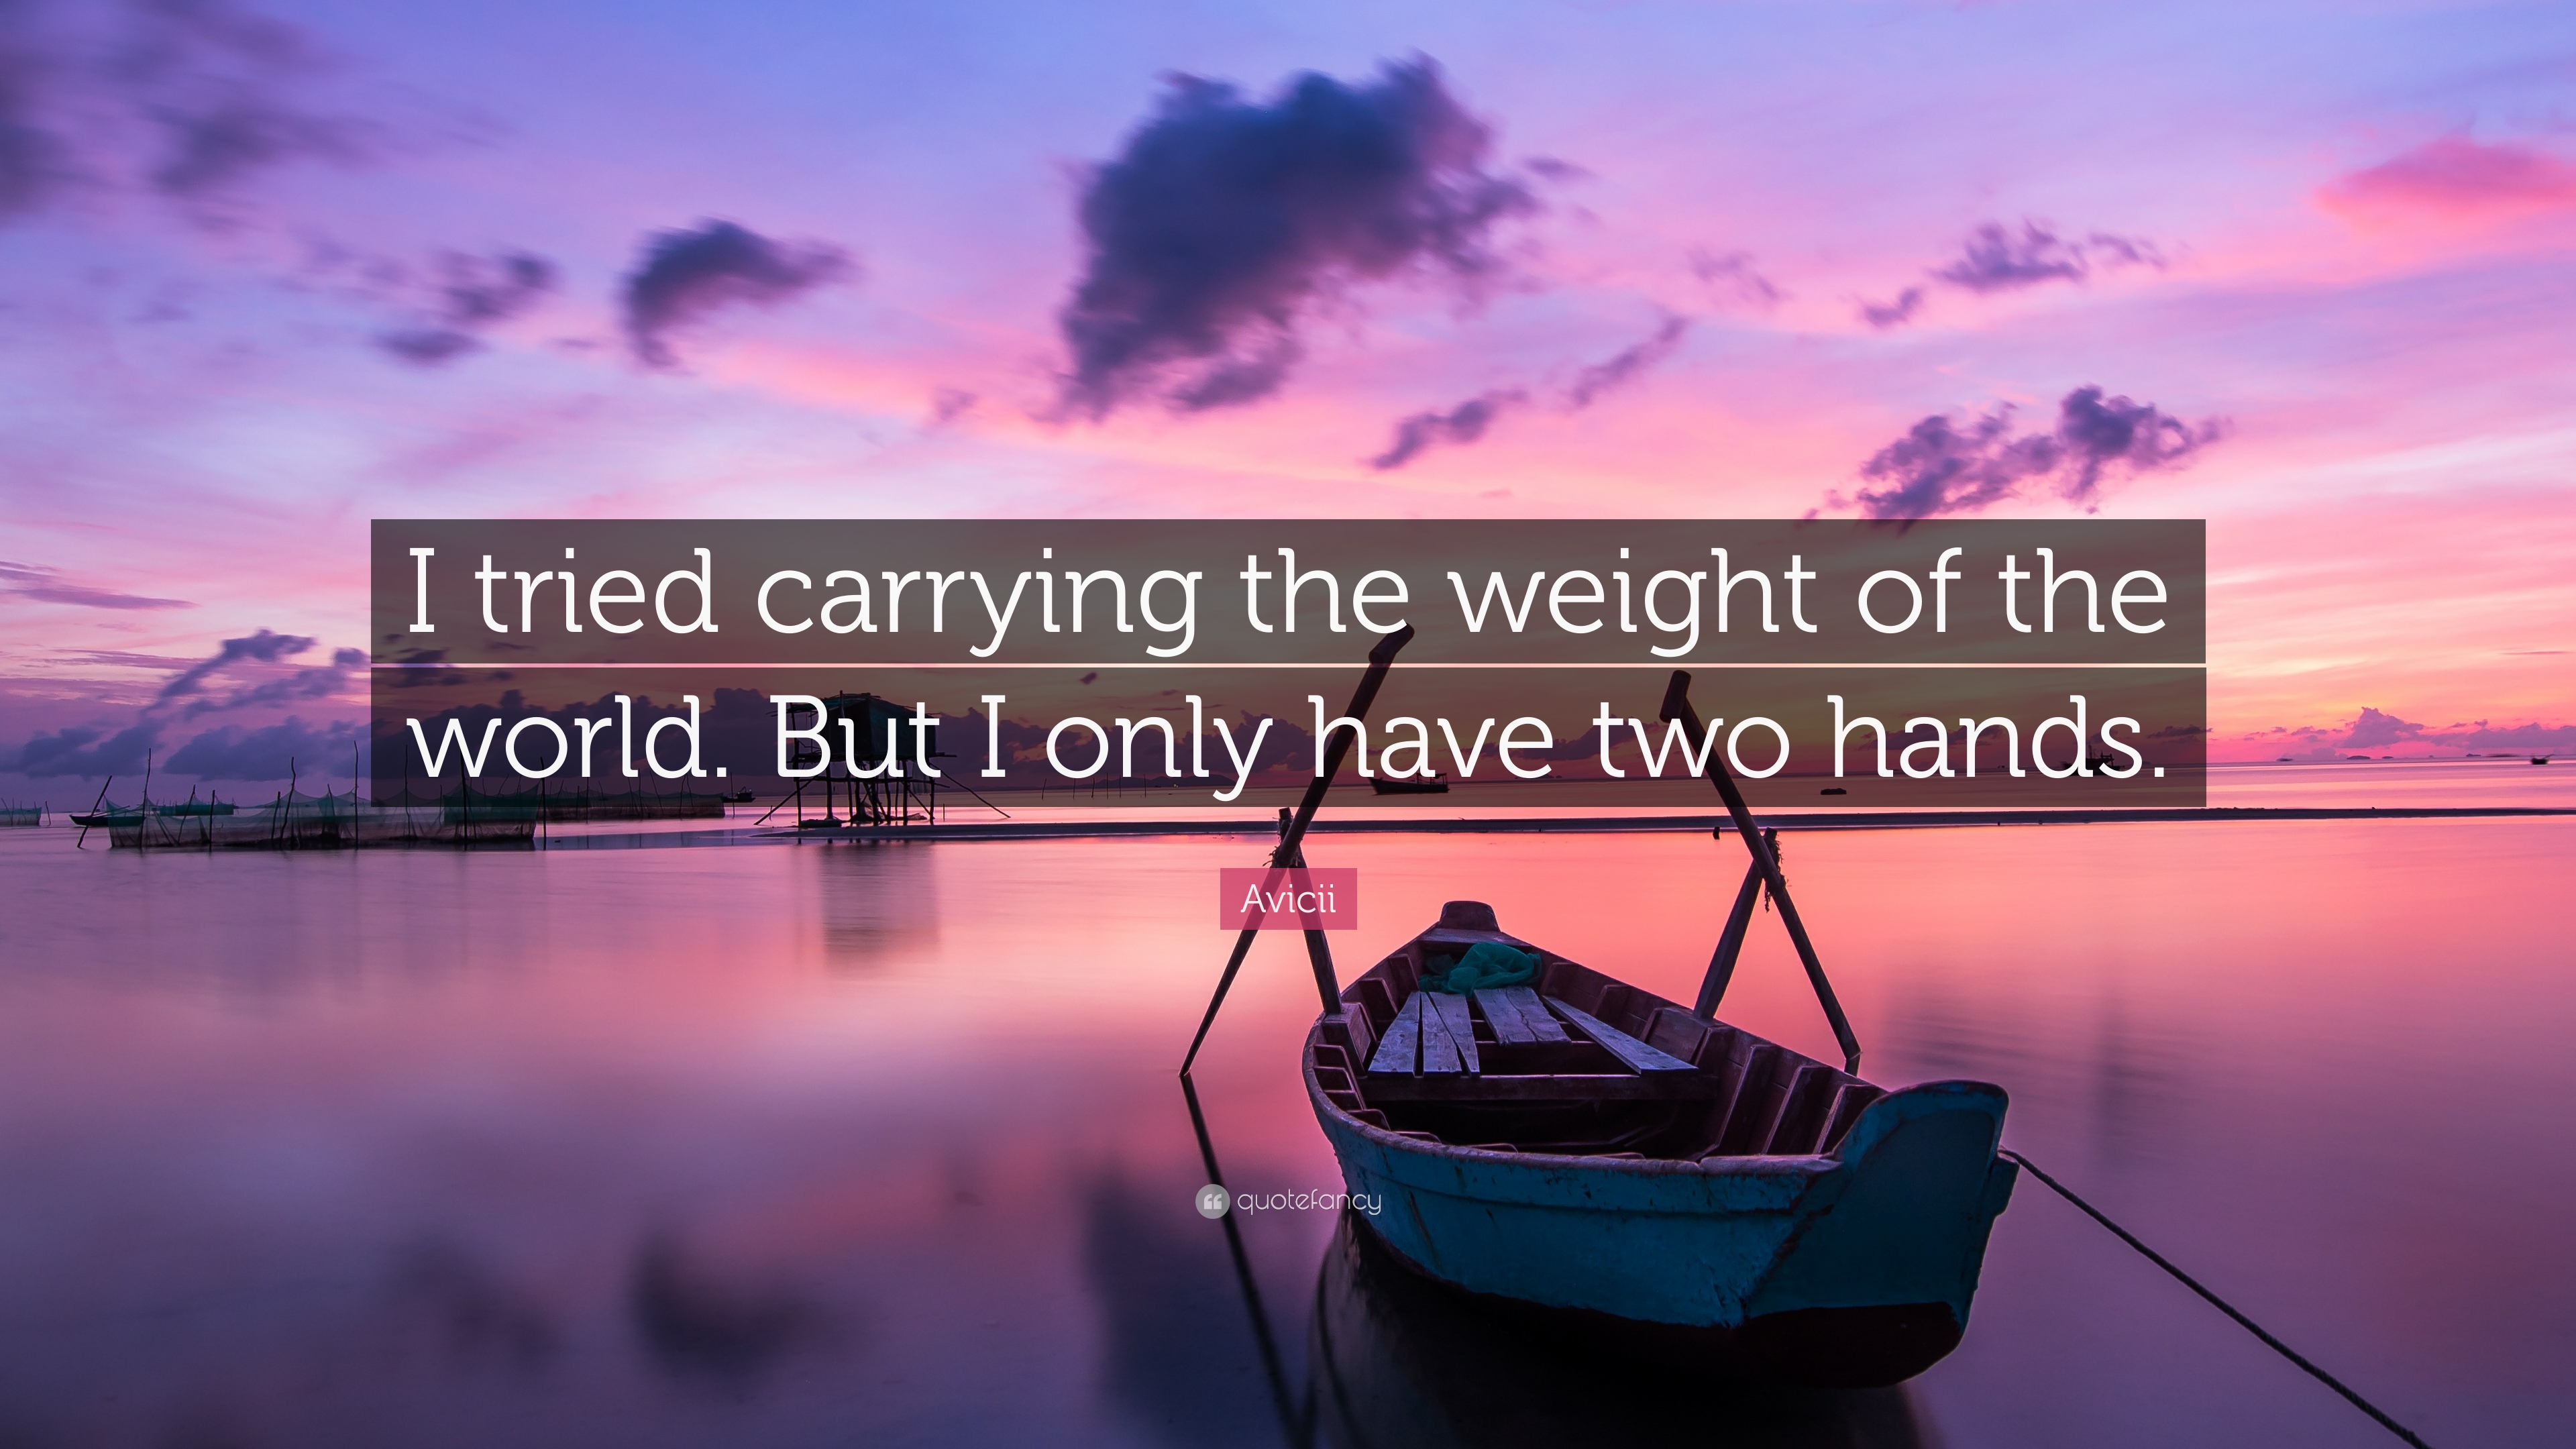 Avicii Quote I Tried Carrying The Weight Of The World But I Only